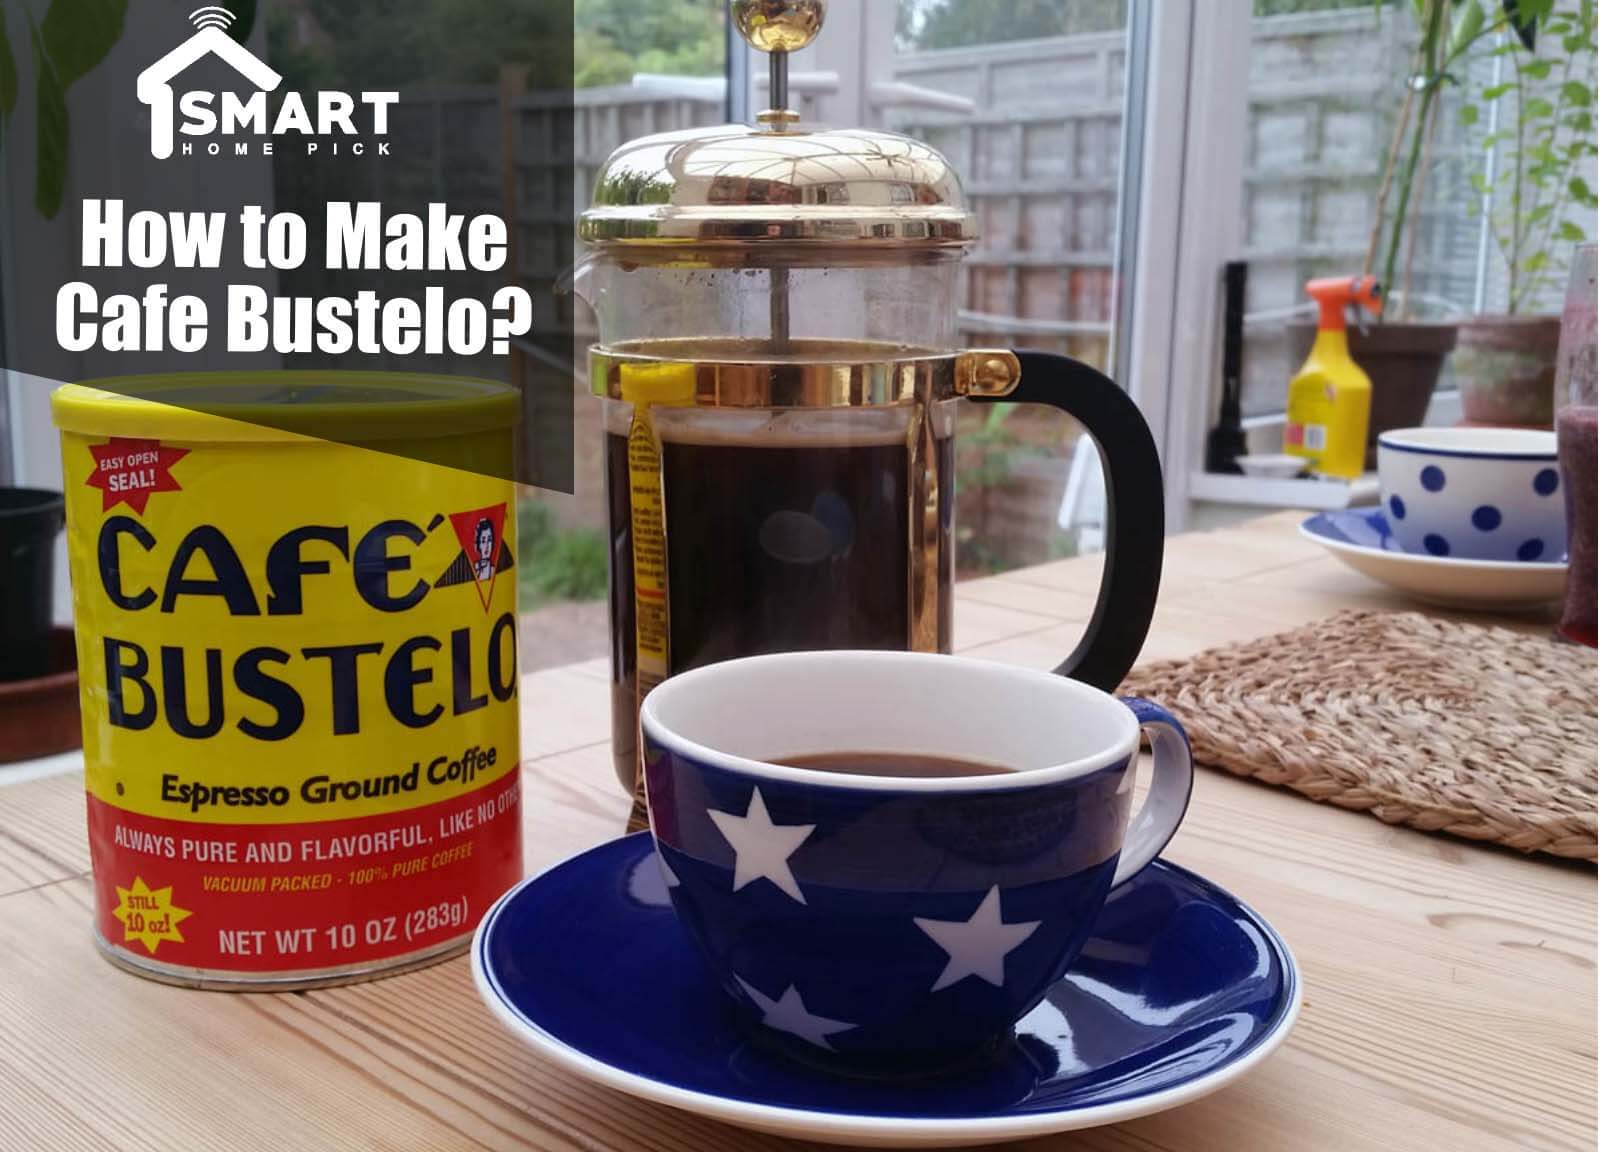 How to Make Cafe Bustelo